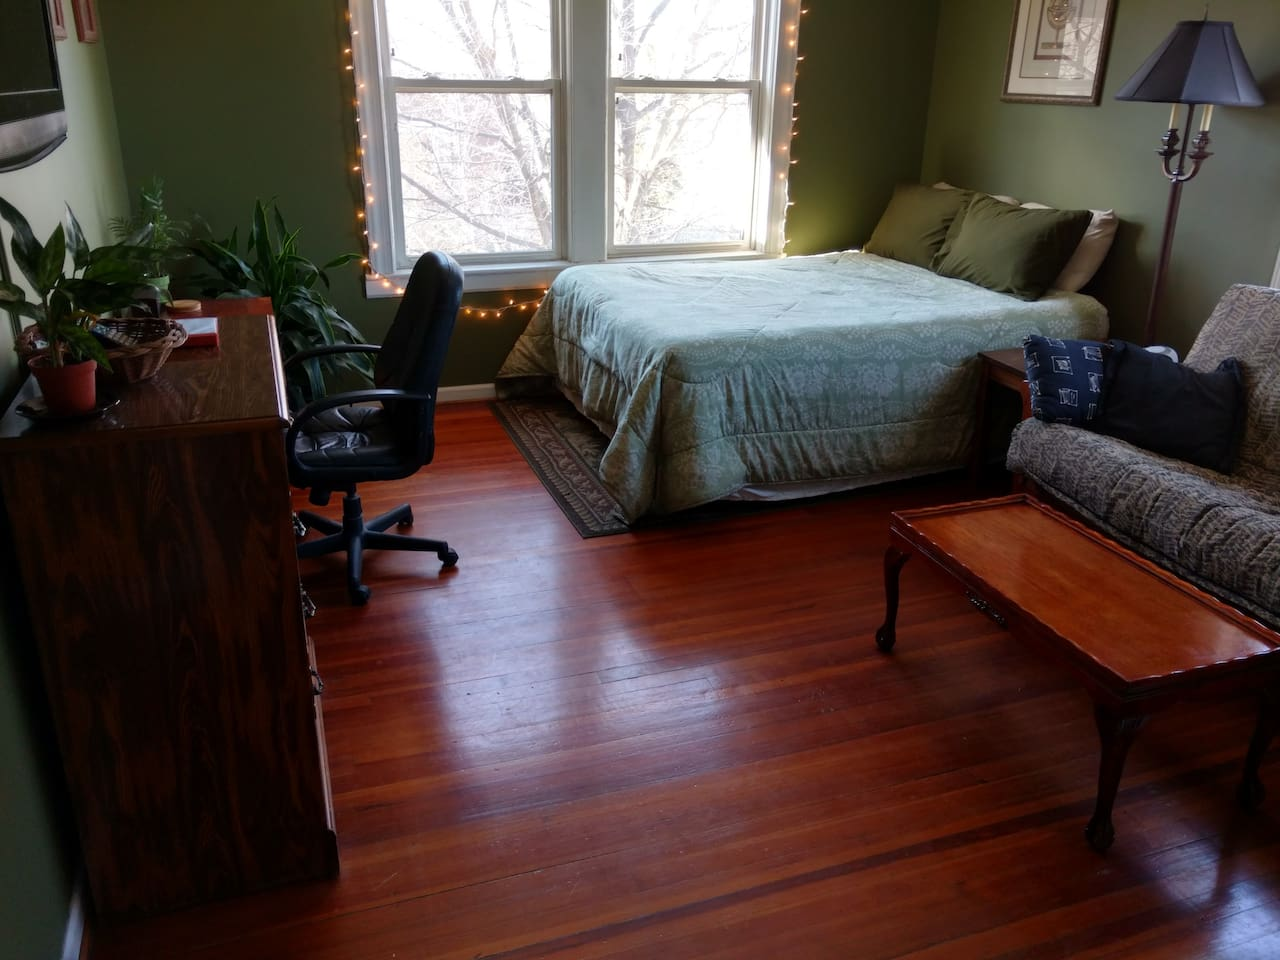 Queen bed and futon that can be converted to a bed.